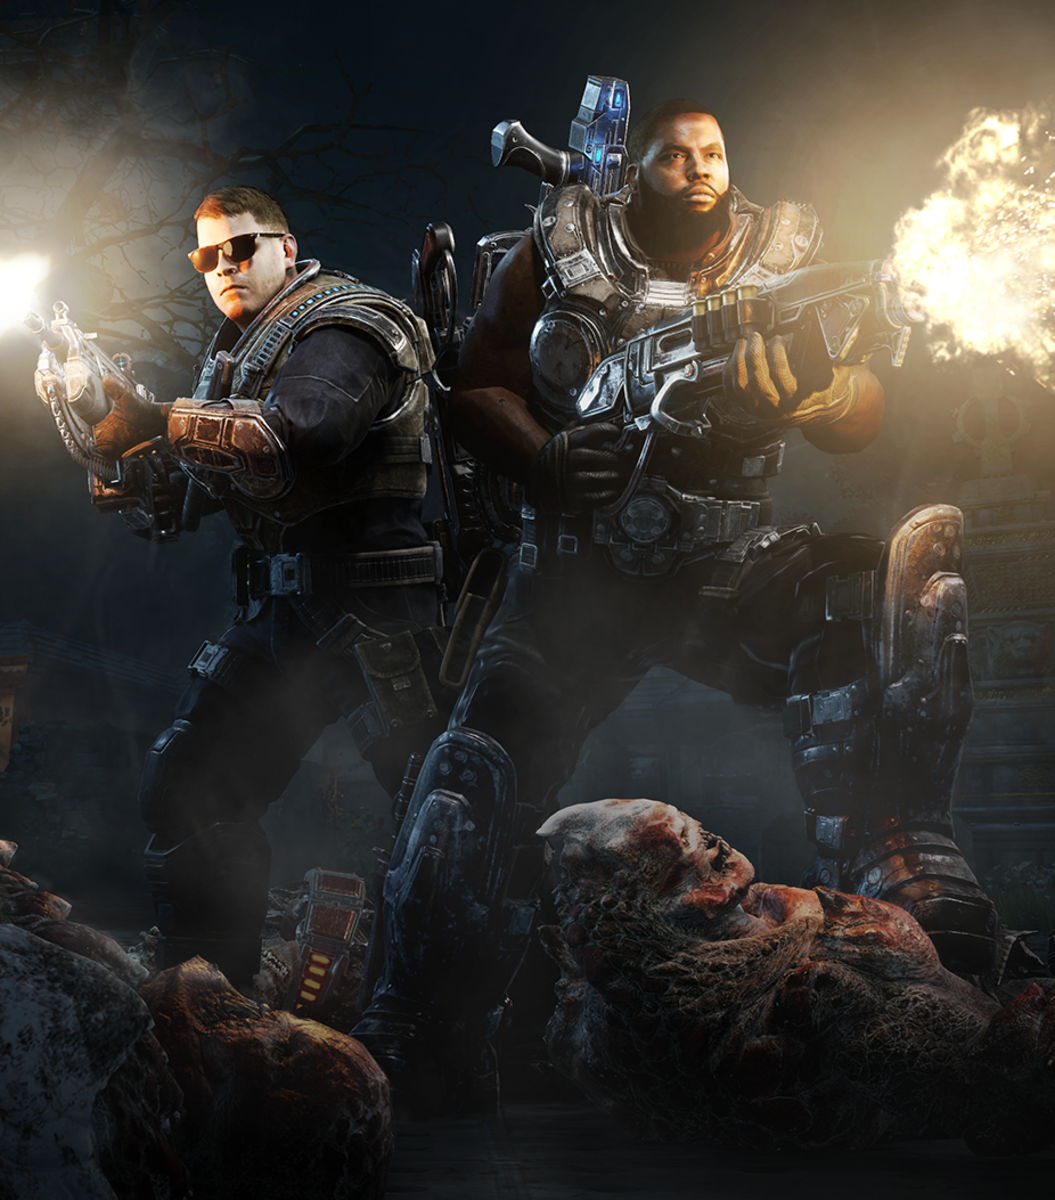 Run The Jewels in 'Gears Of War 4'